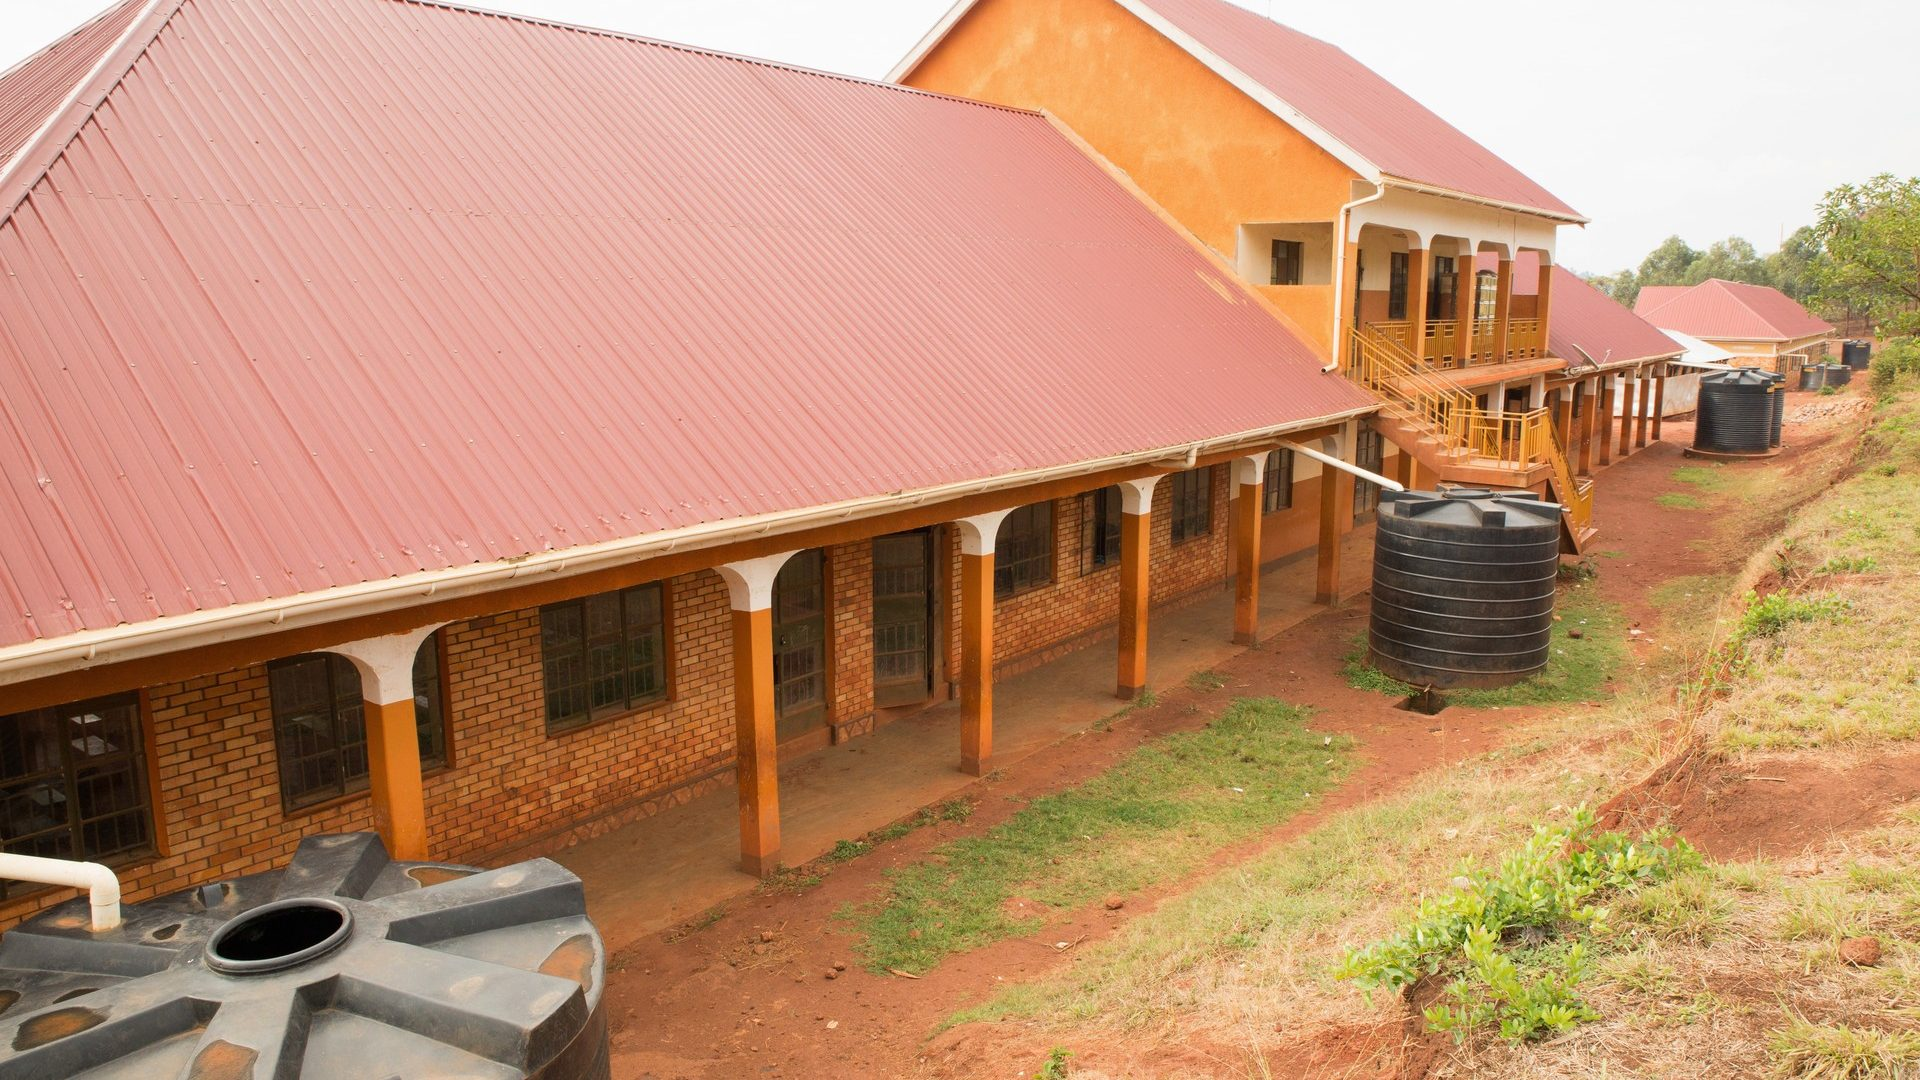 Secondary school buildings